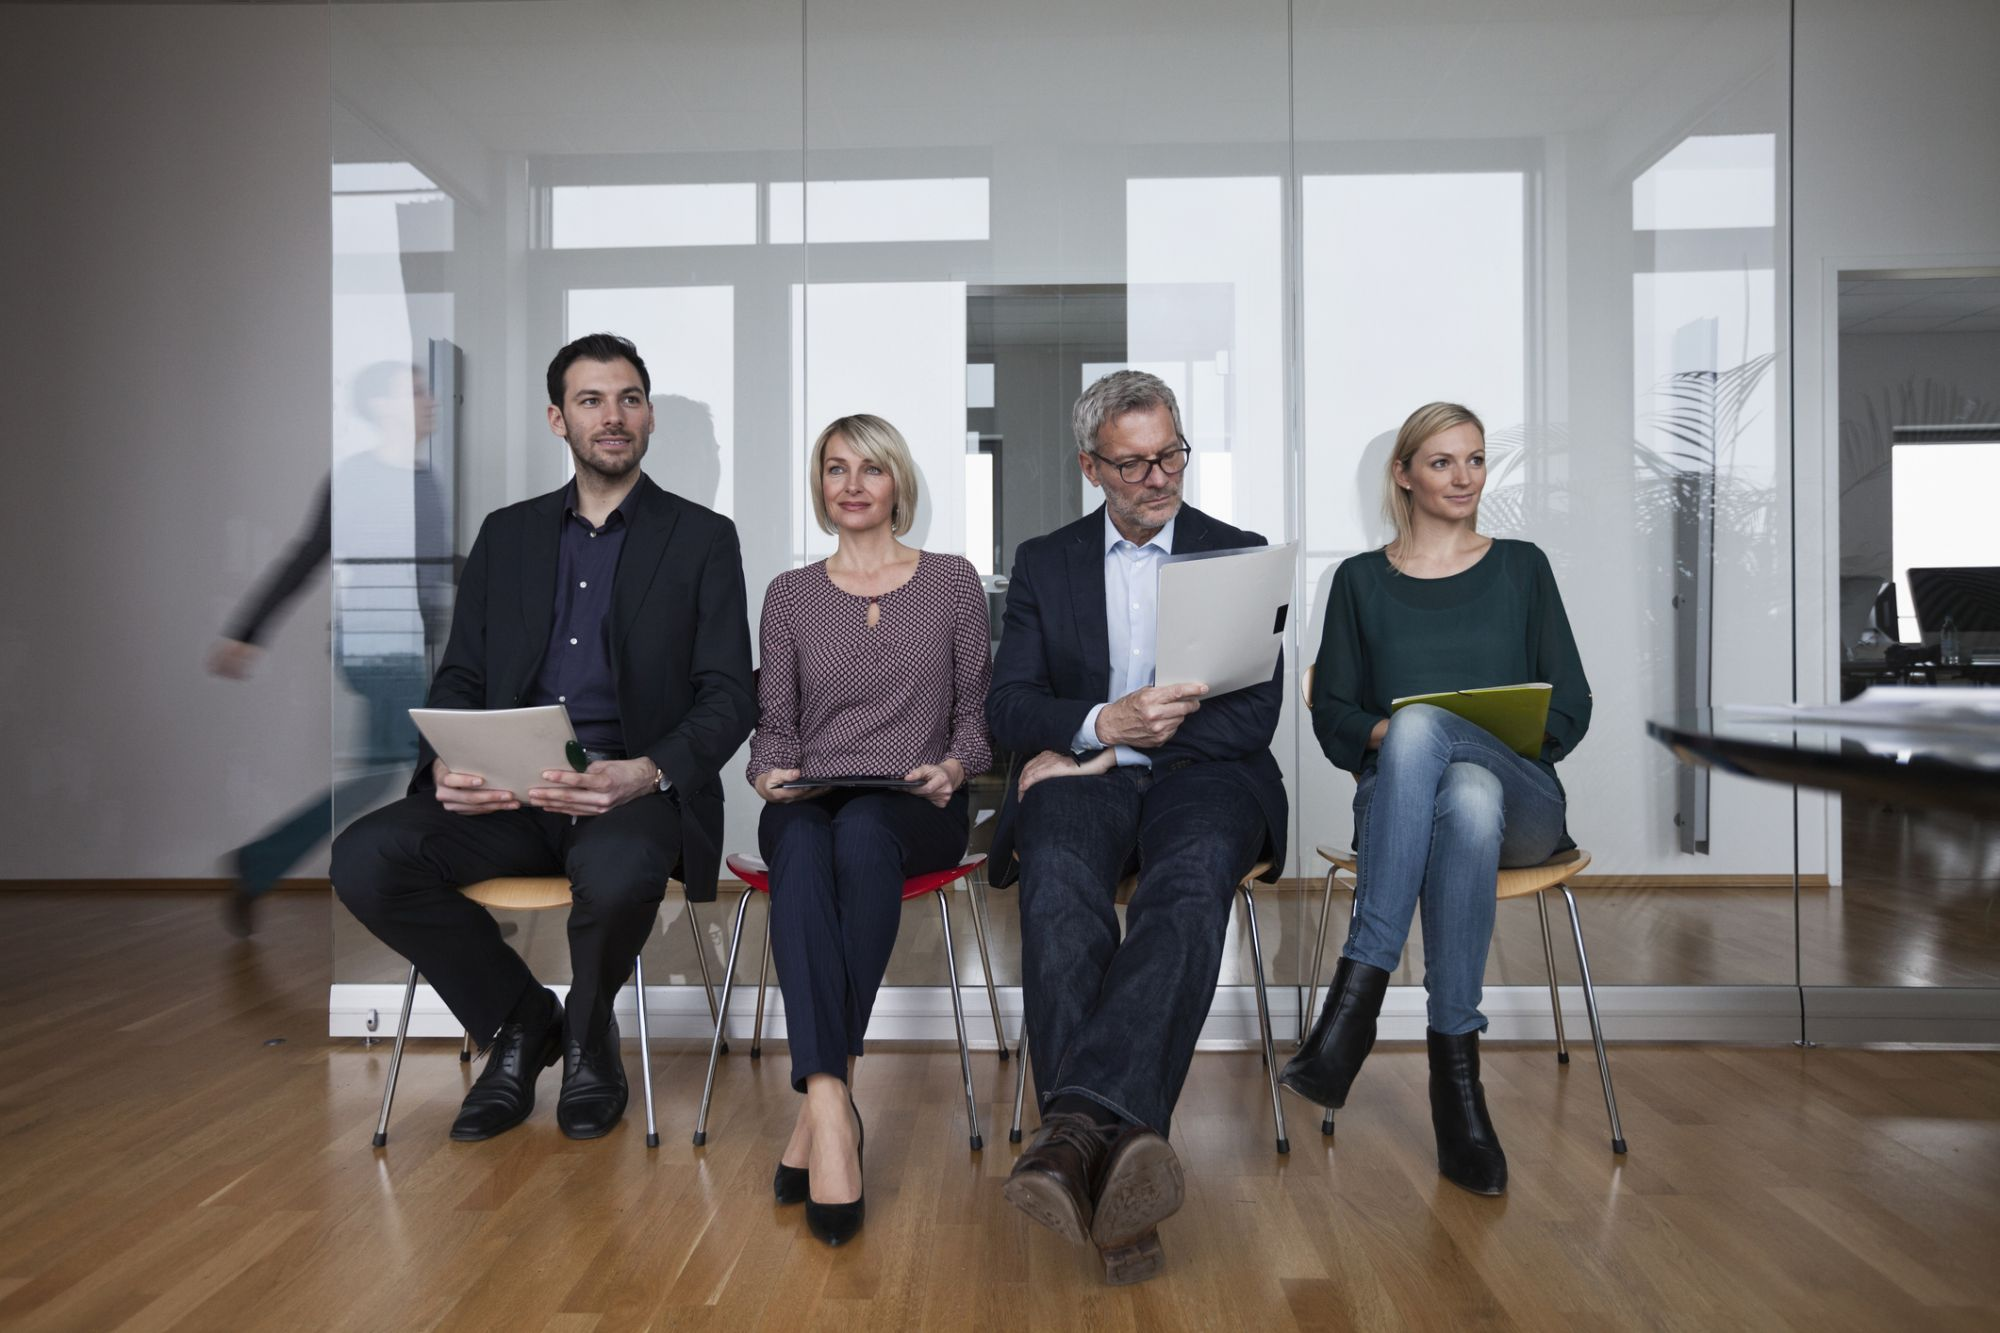 3 Ways to Retool Your Hiring Process to Attract High-Quality Job Seekers